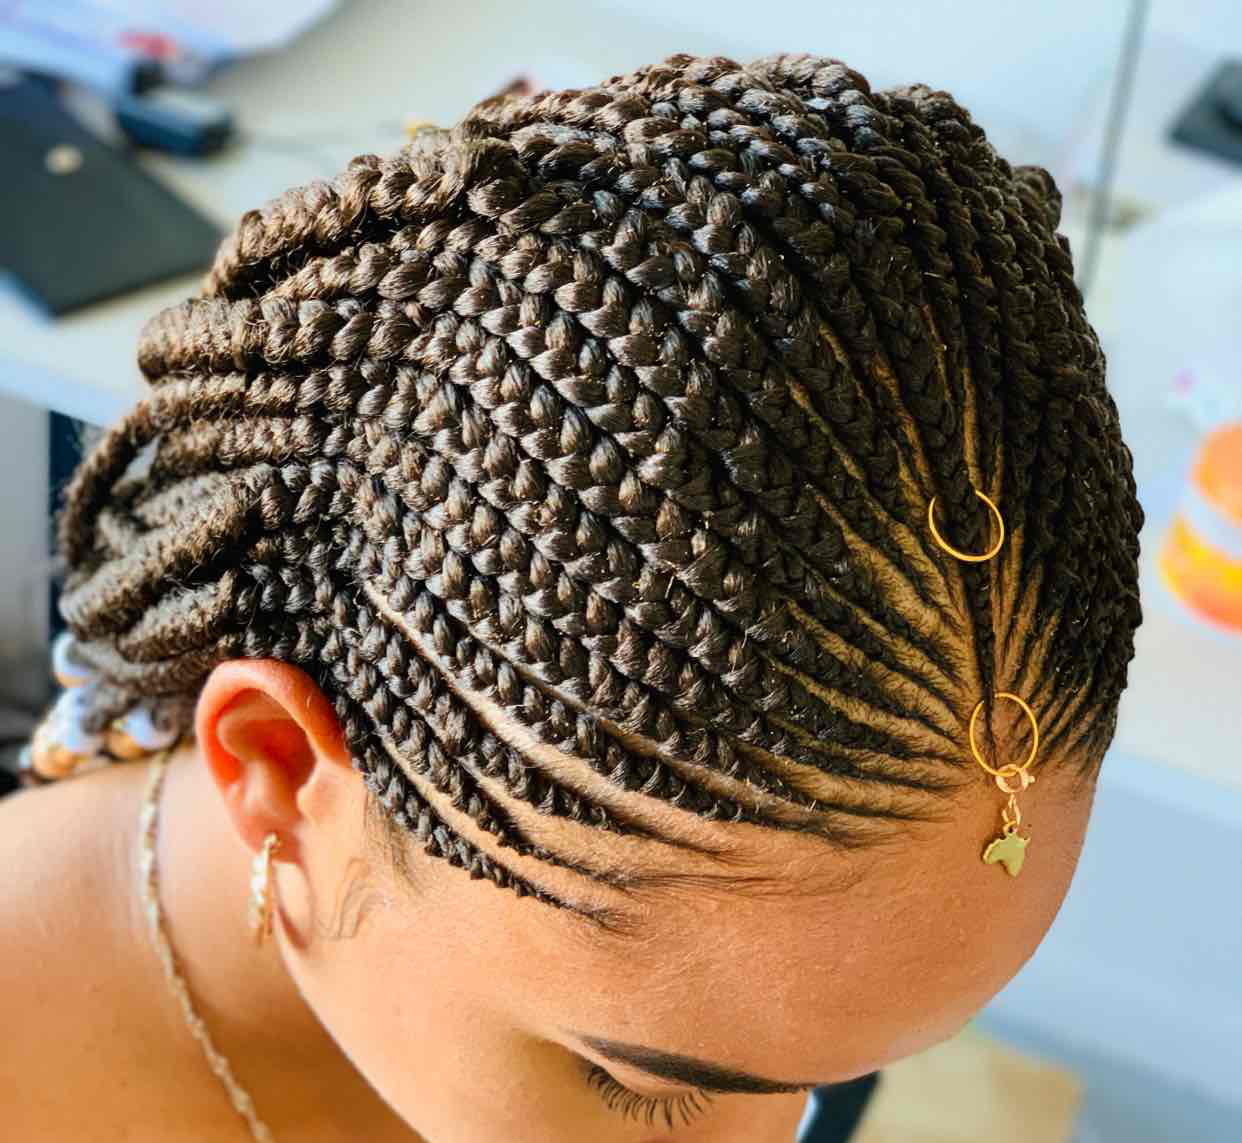 salon de coiffure afro tresse tresses box braids crochet braids vanilles tissages paris 75 77 78 91 92 93 94 95 LOLYFHQI